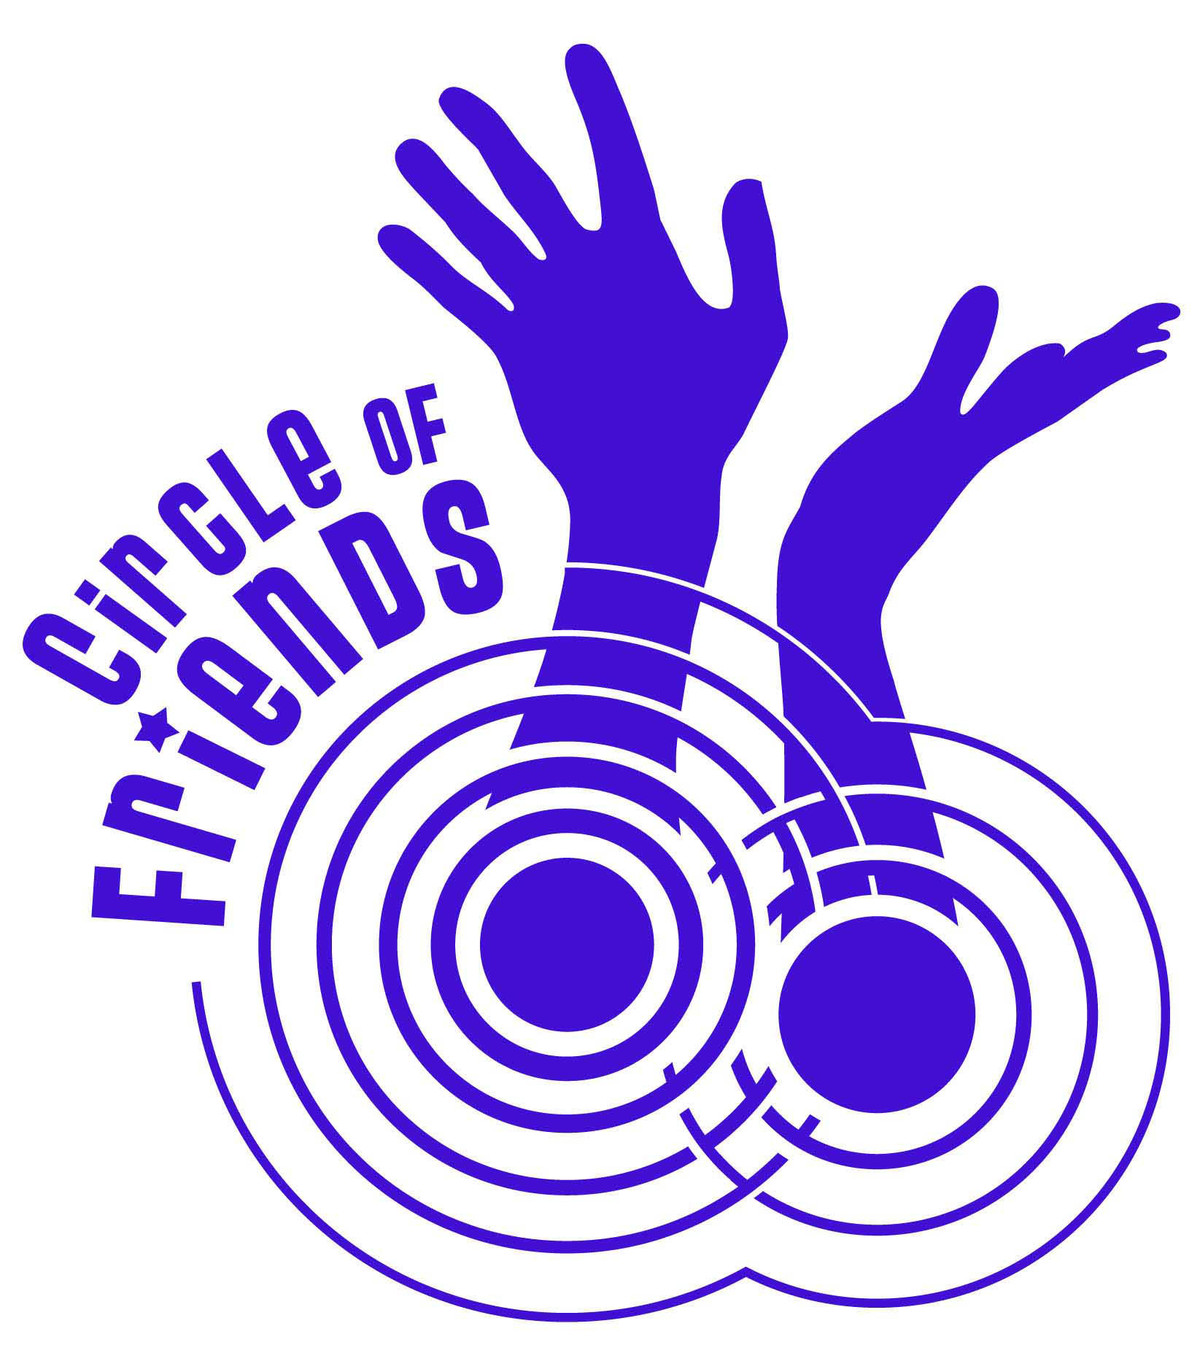 This piece is a logo design for the Circle of Friends charity organization.